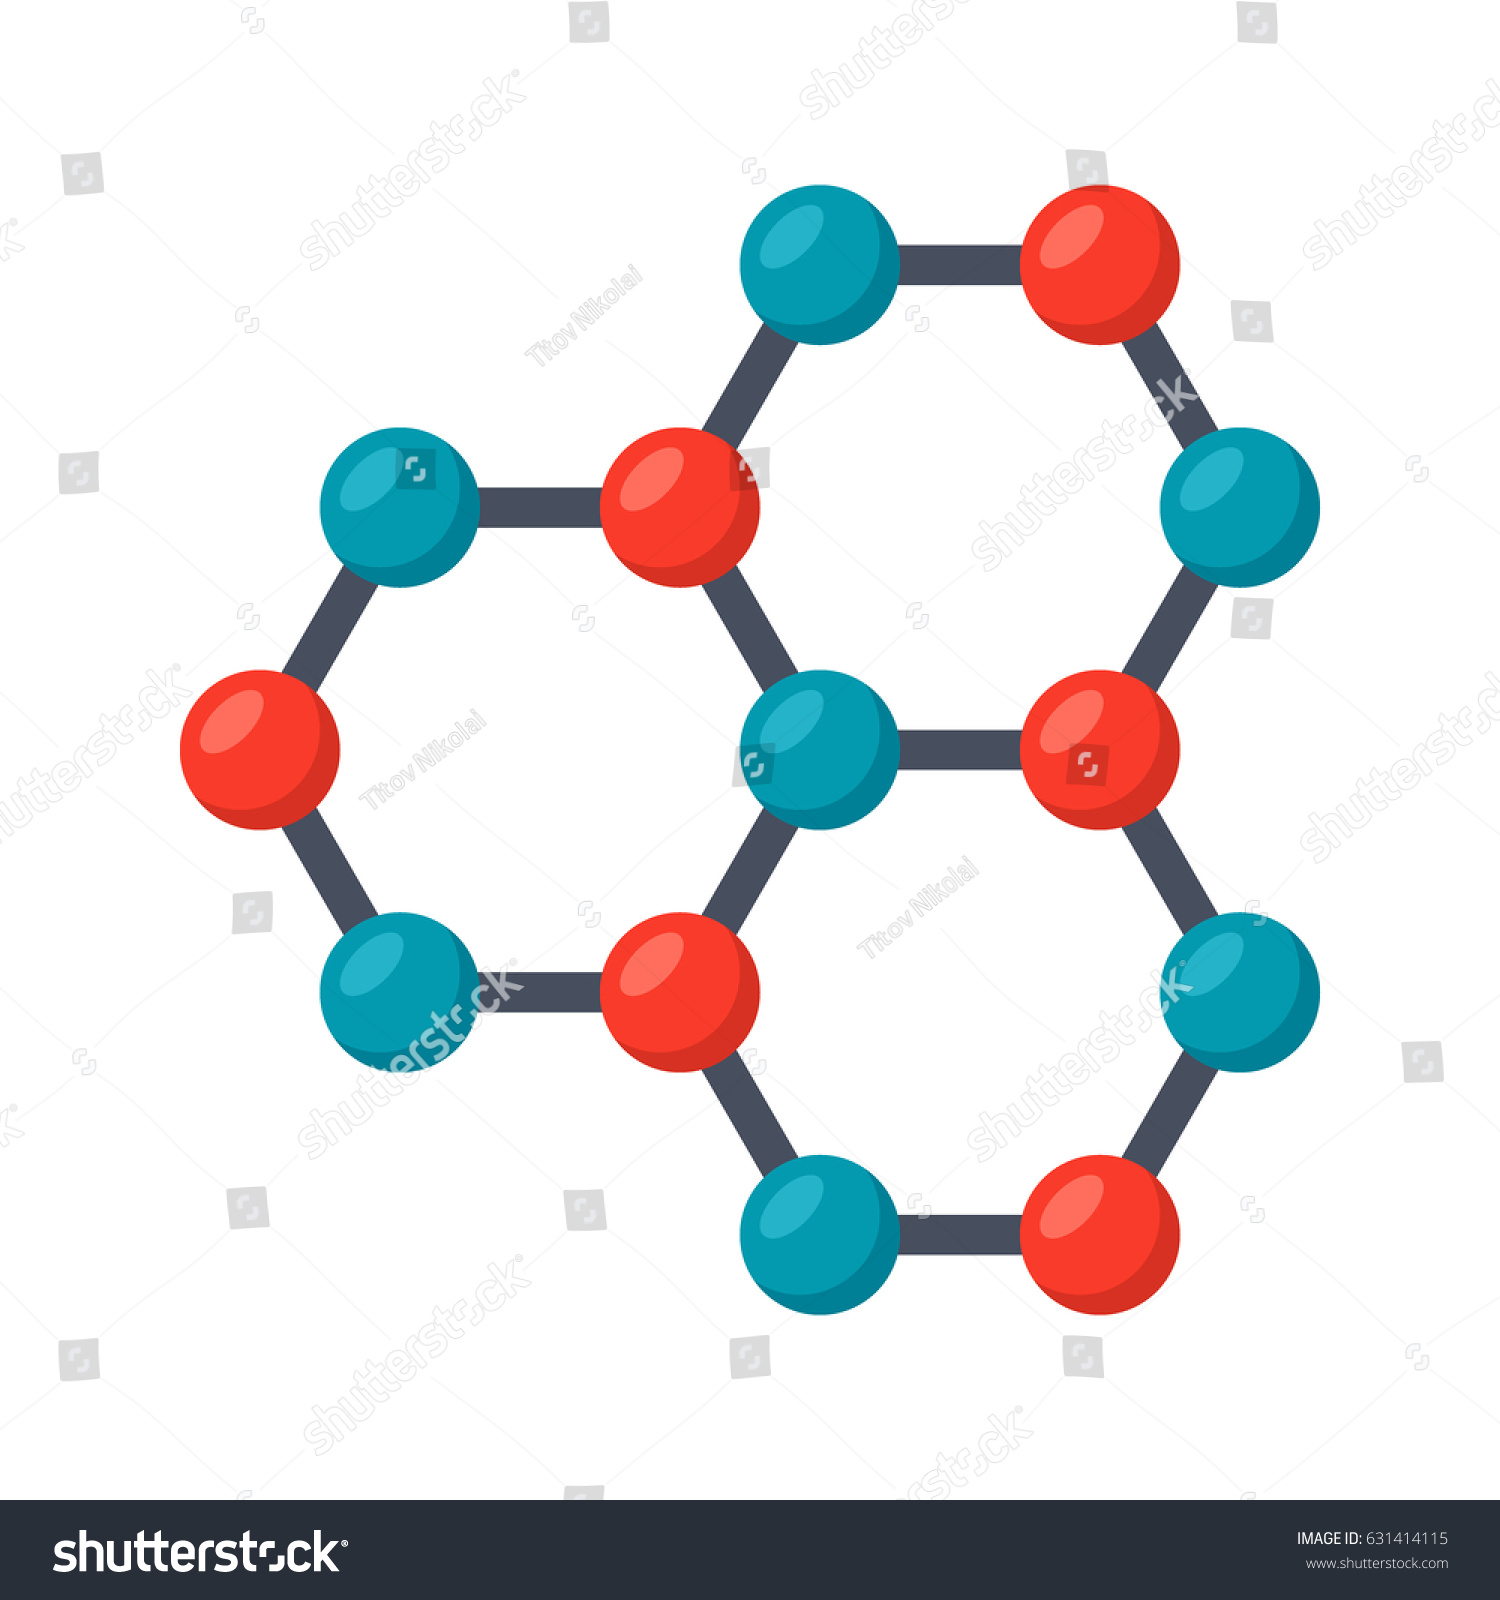 Nanotechnology concept graphene atomic structure vector stock nanotechnology concept with graphene atomic structure vector illustration in flat style ccuart Gallery